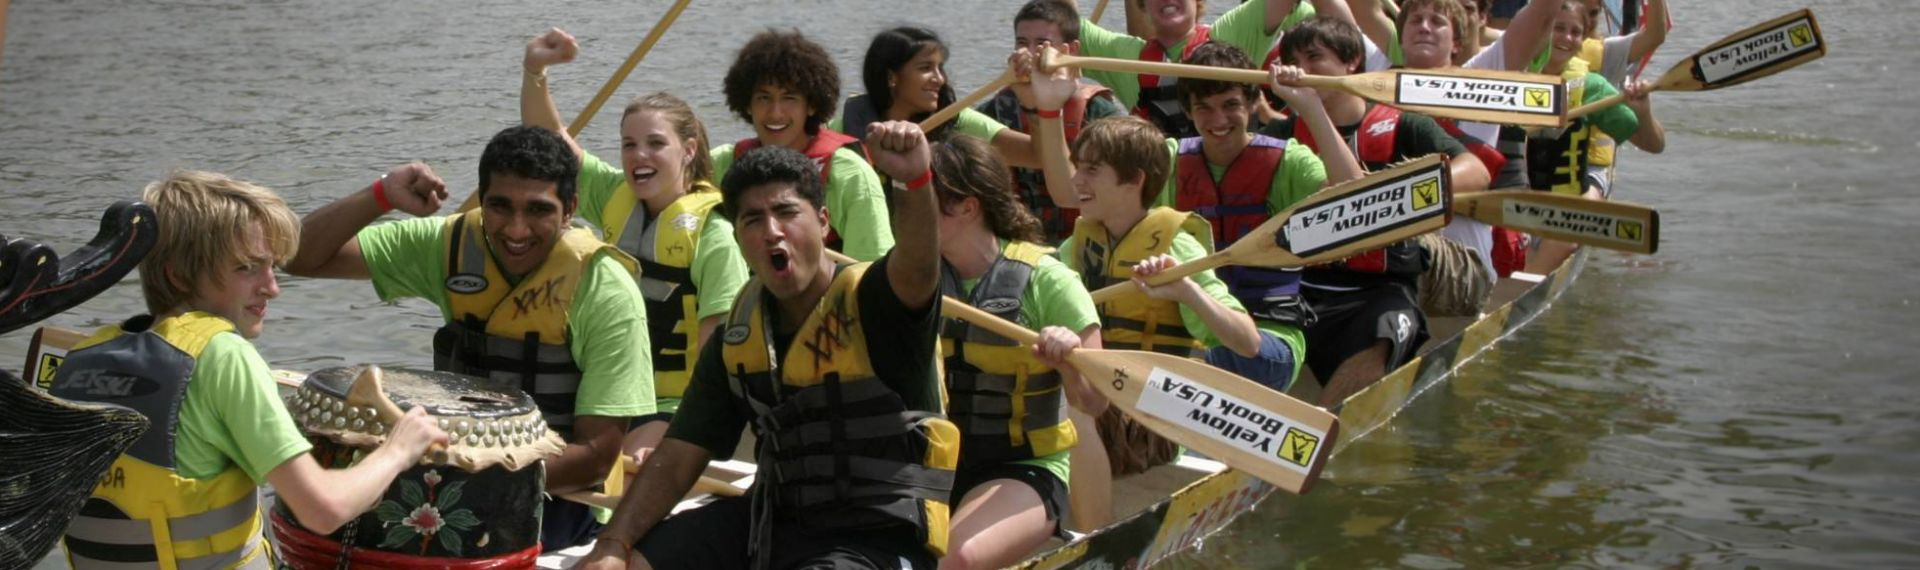 Upper School students participate in rowing team fundraiser event.